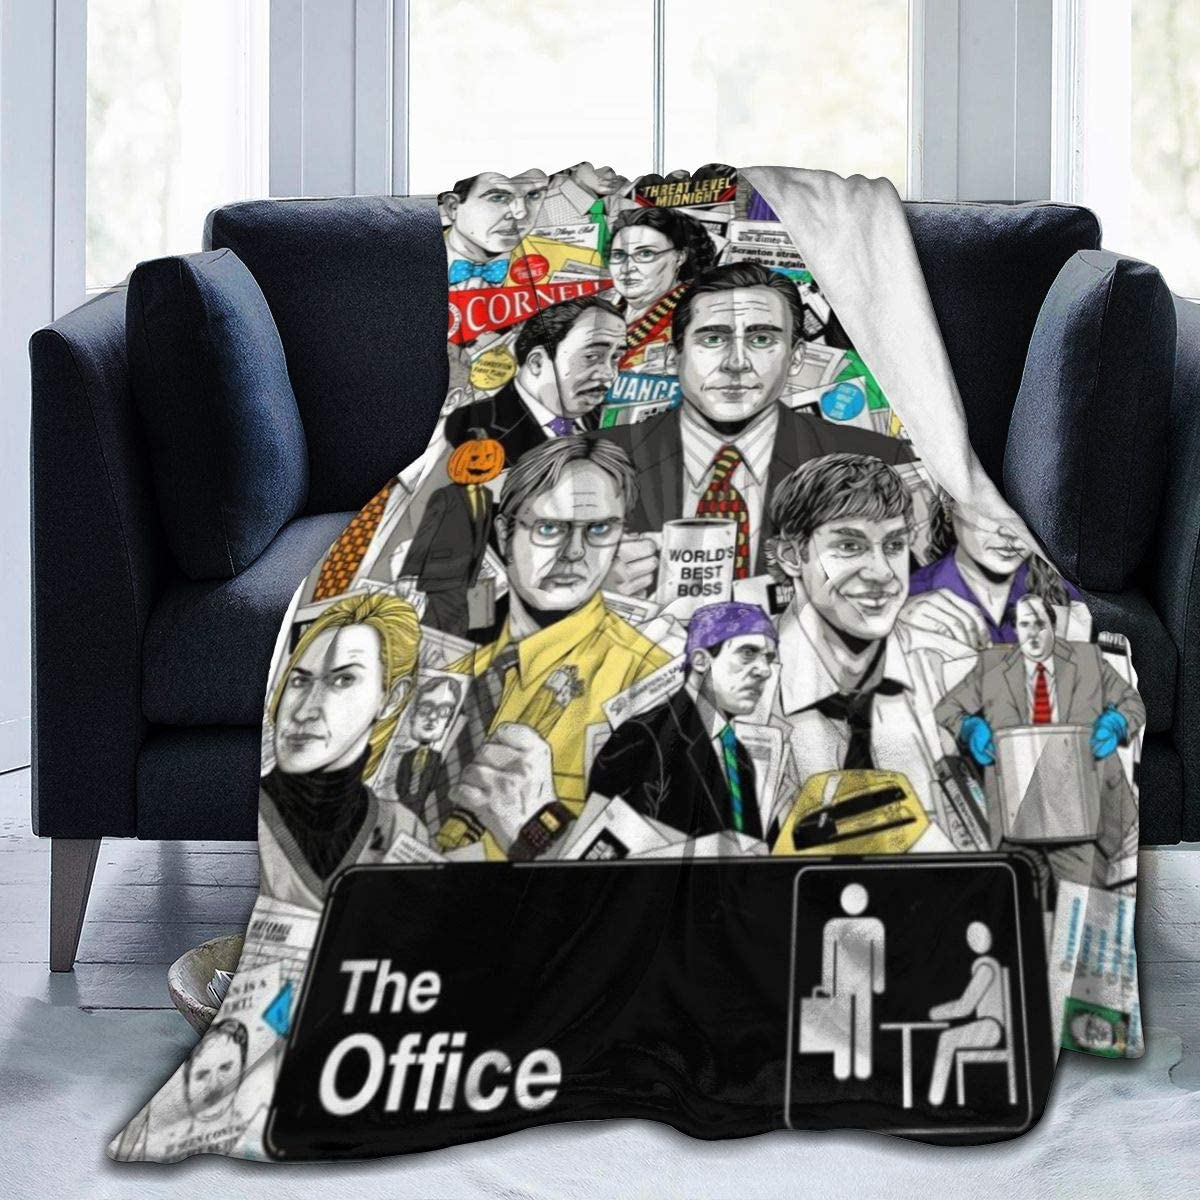 Kcoremia Dunder Mifflin The Office Ultra-Soft Micro Fleece Blanket 3D Printed Blanket Lightweight Throw for The Bed Quilt Super Soft Warm Blanket for Kids Adults Durable Comfortable Plush Blanket